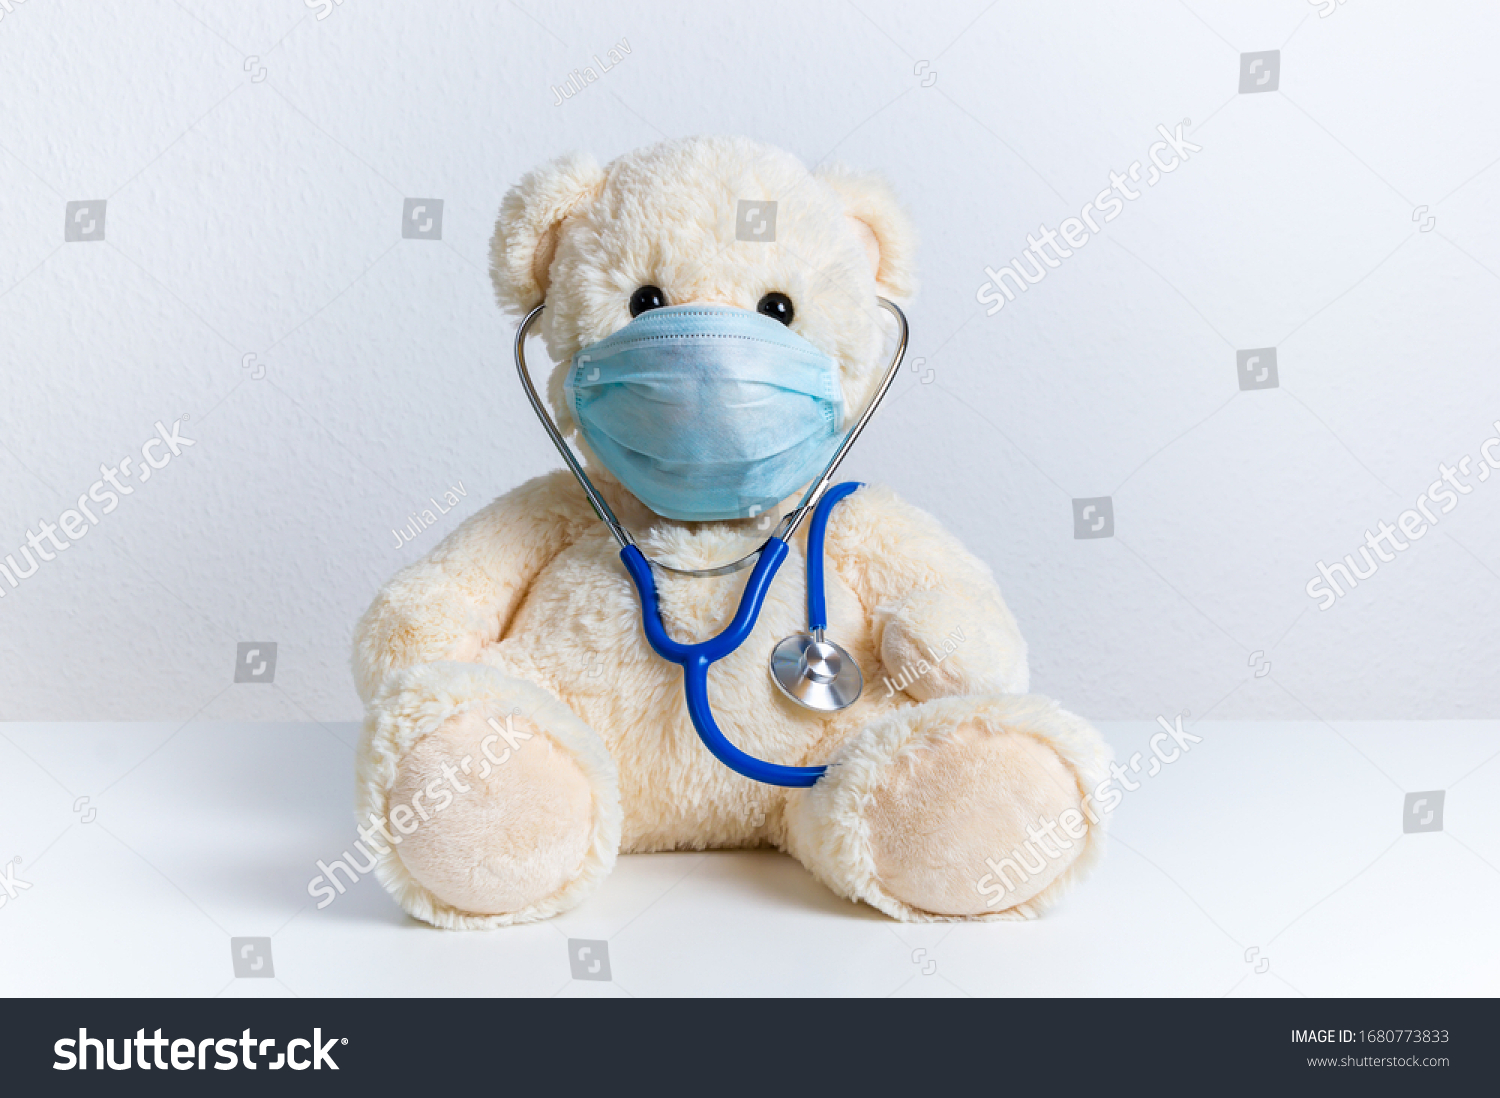 Cute teddy bear doctor with protective medical mask and stethoscope. Concept of pediatric treatment of illness, hygiene, epidemic and virus protection for child patient. Fluffy toy on white background #1680773833